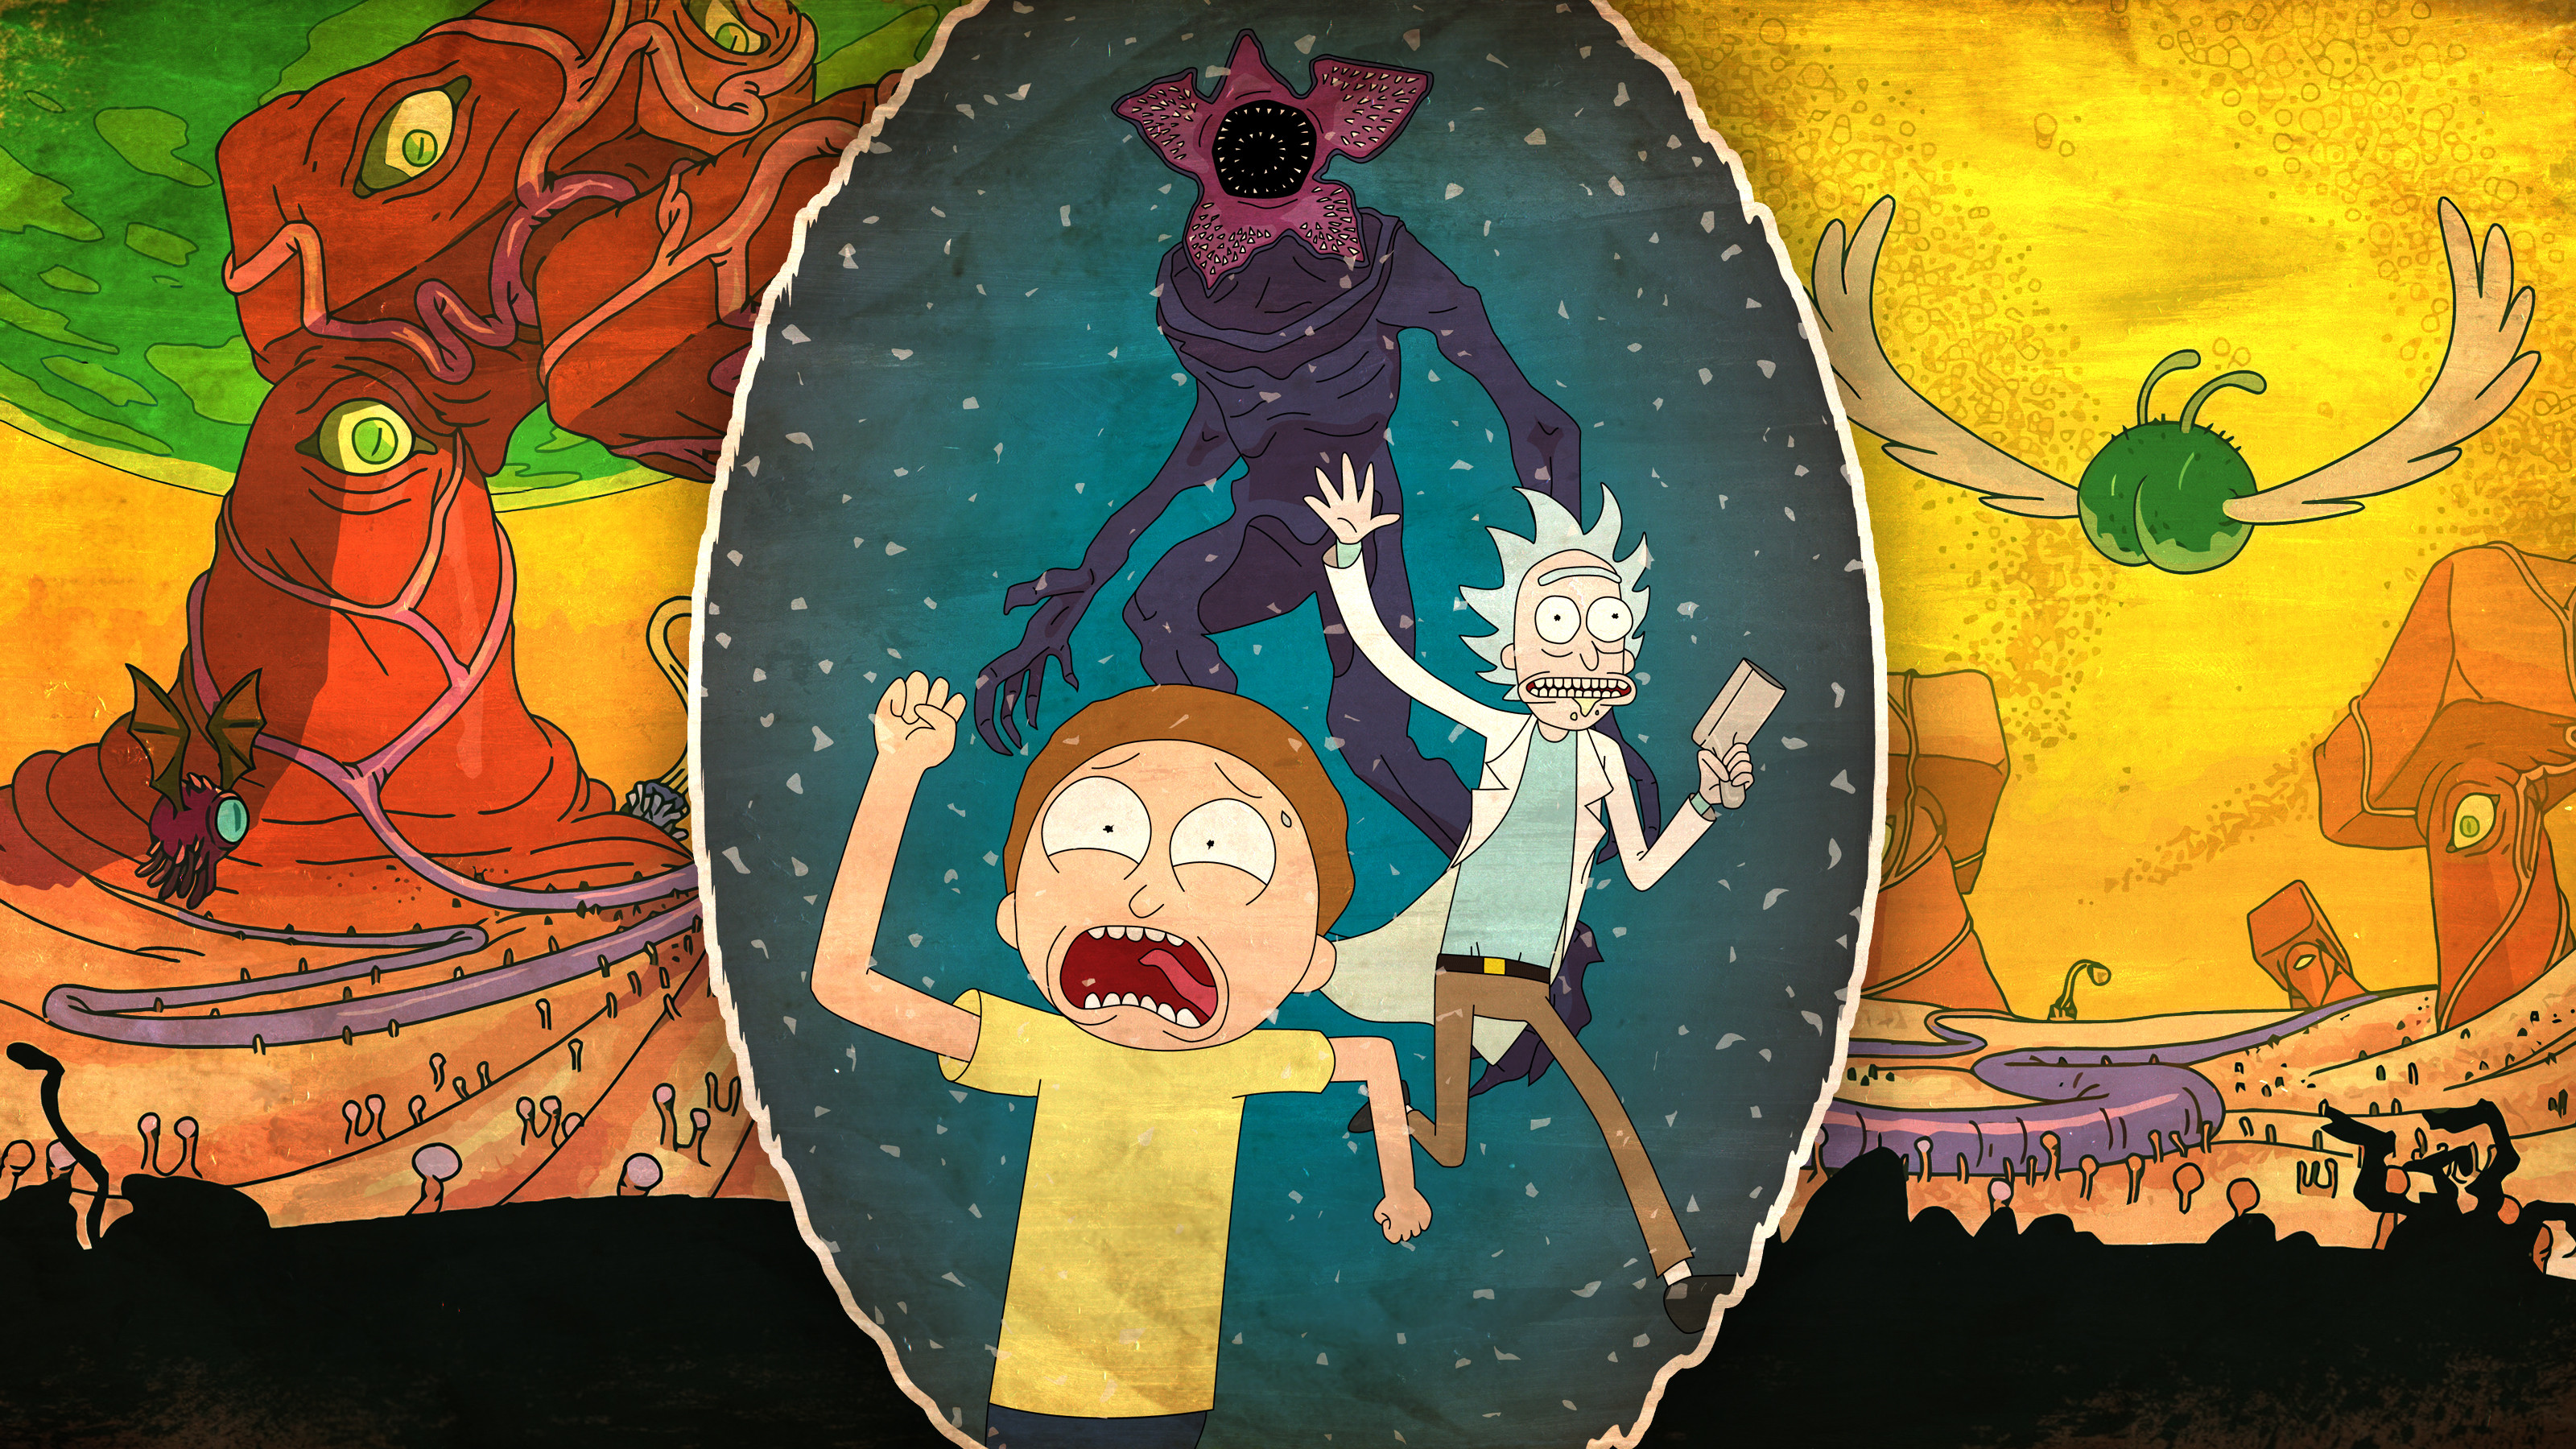 Rick And Morty 4k Hd Cartoons 4k Wallpapers Images Backgrounds